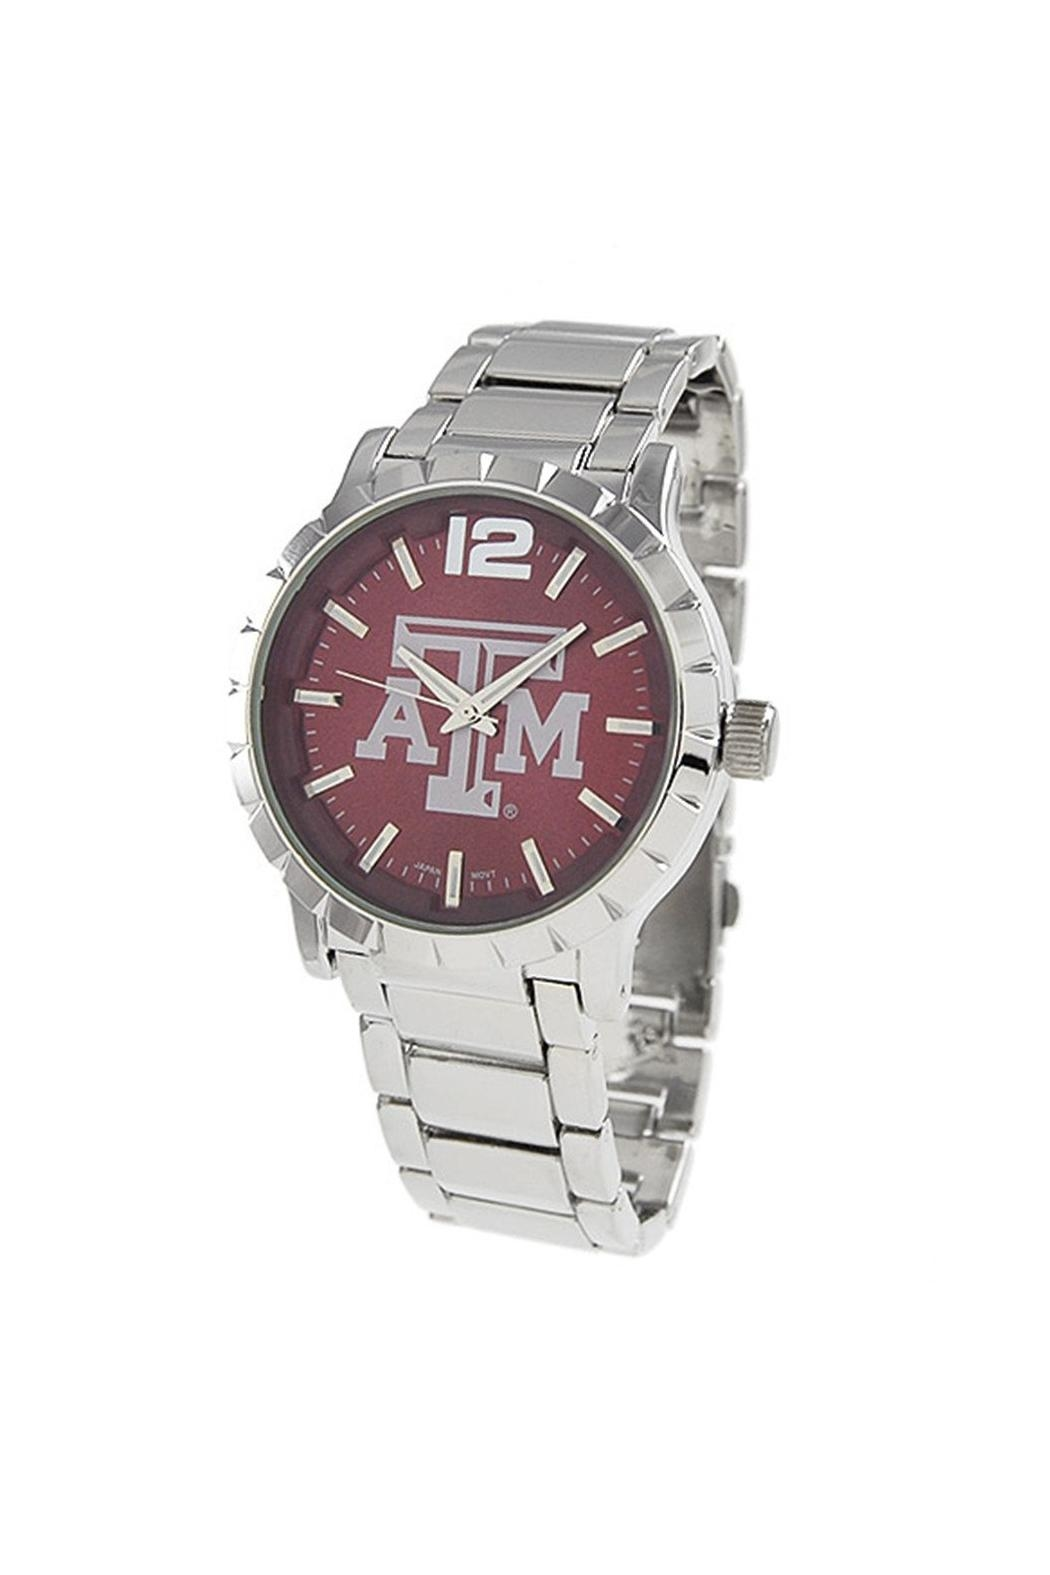 NCAA Texas-A&M-University Men's Watch - Main Image